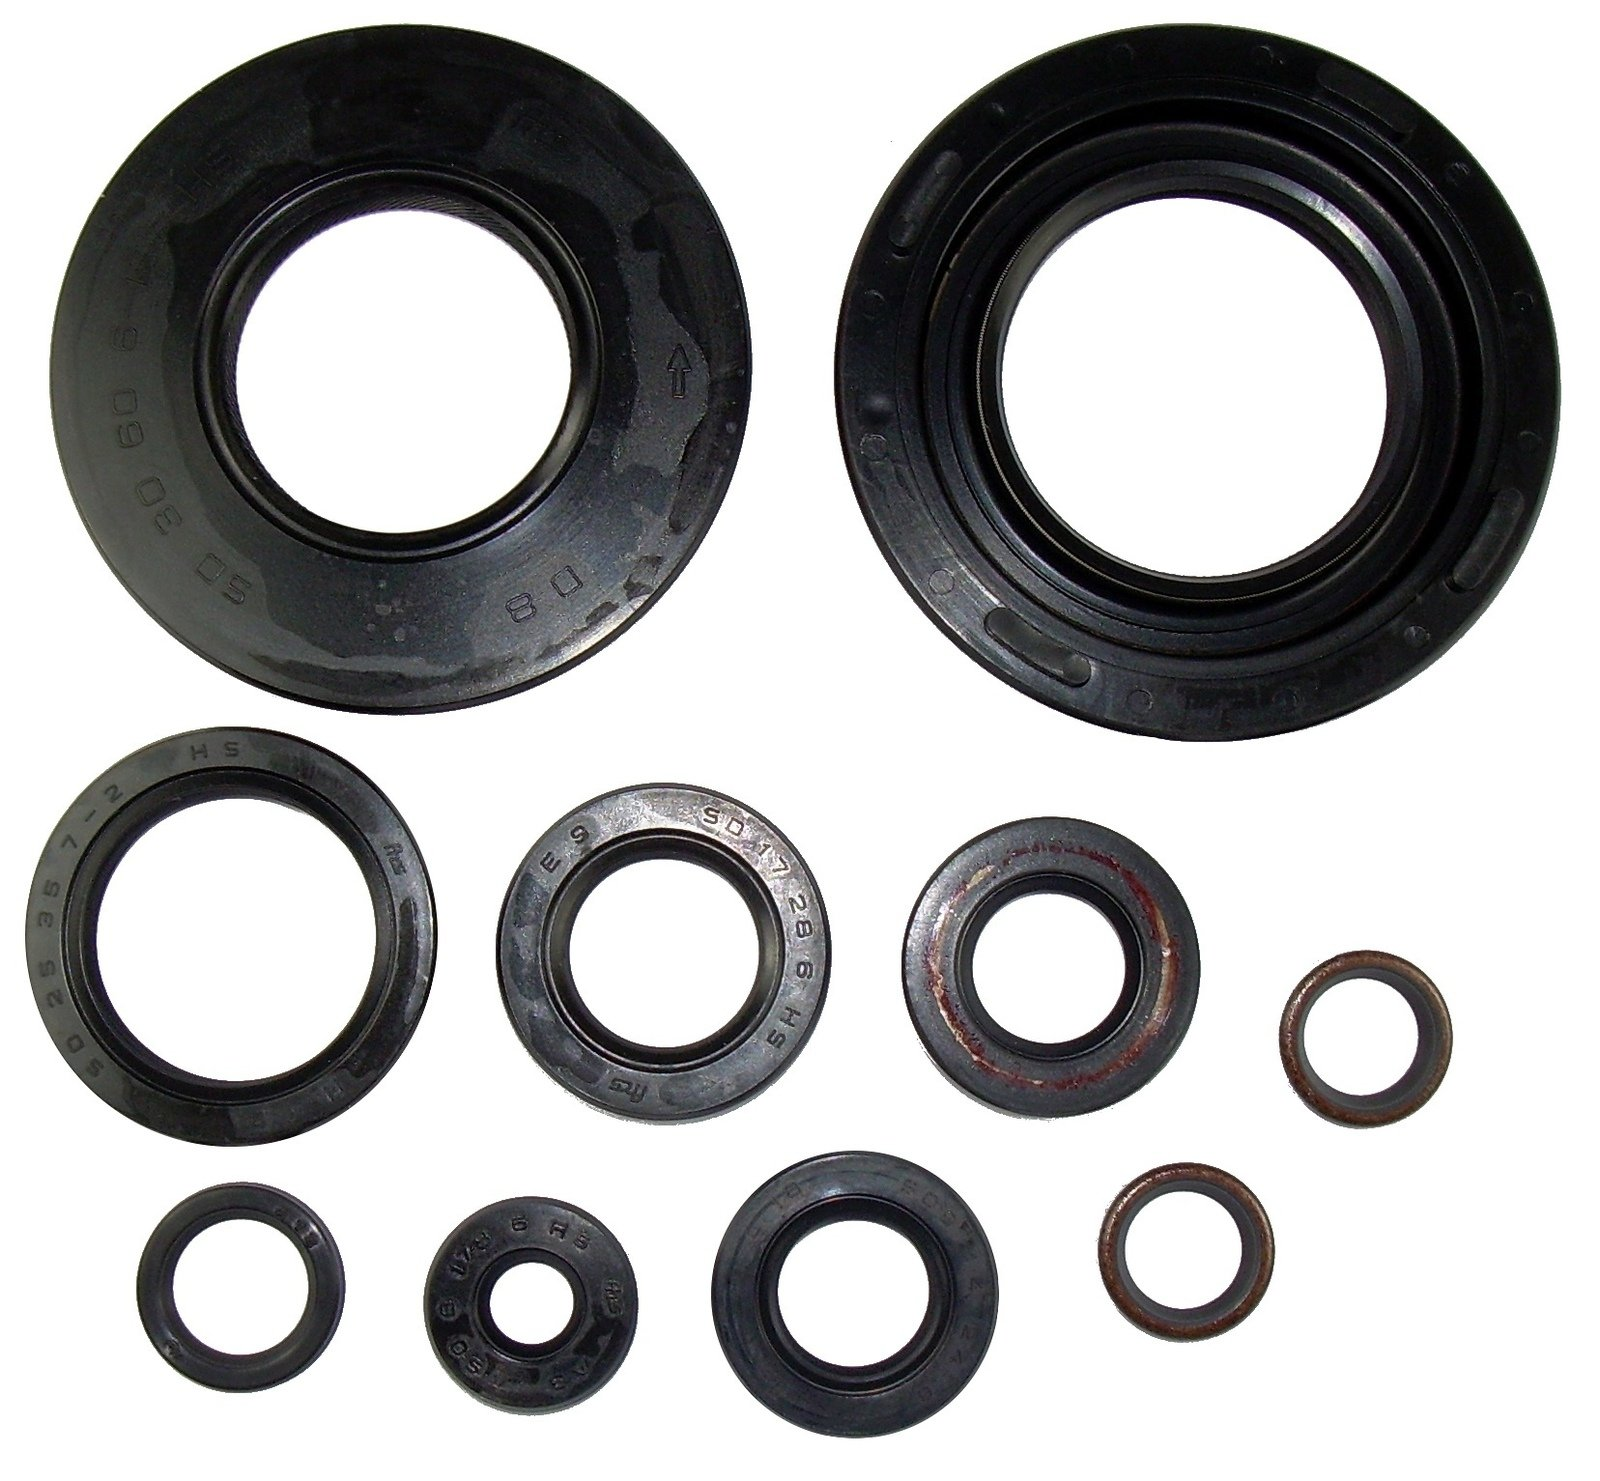 Yamaha 1978-1981 SR500 Engine Shaft and Oil Seal Kit, 10 Pcs, 02-043